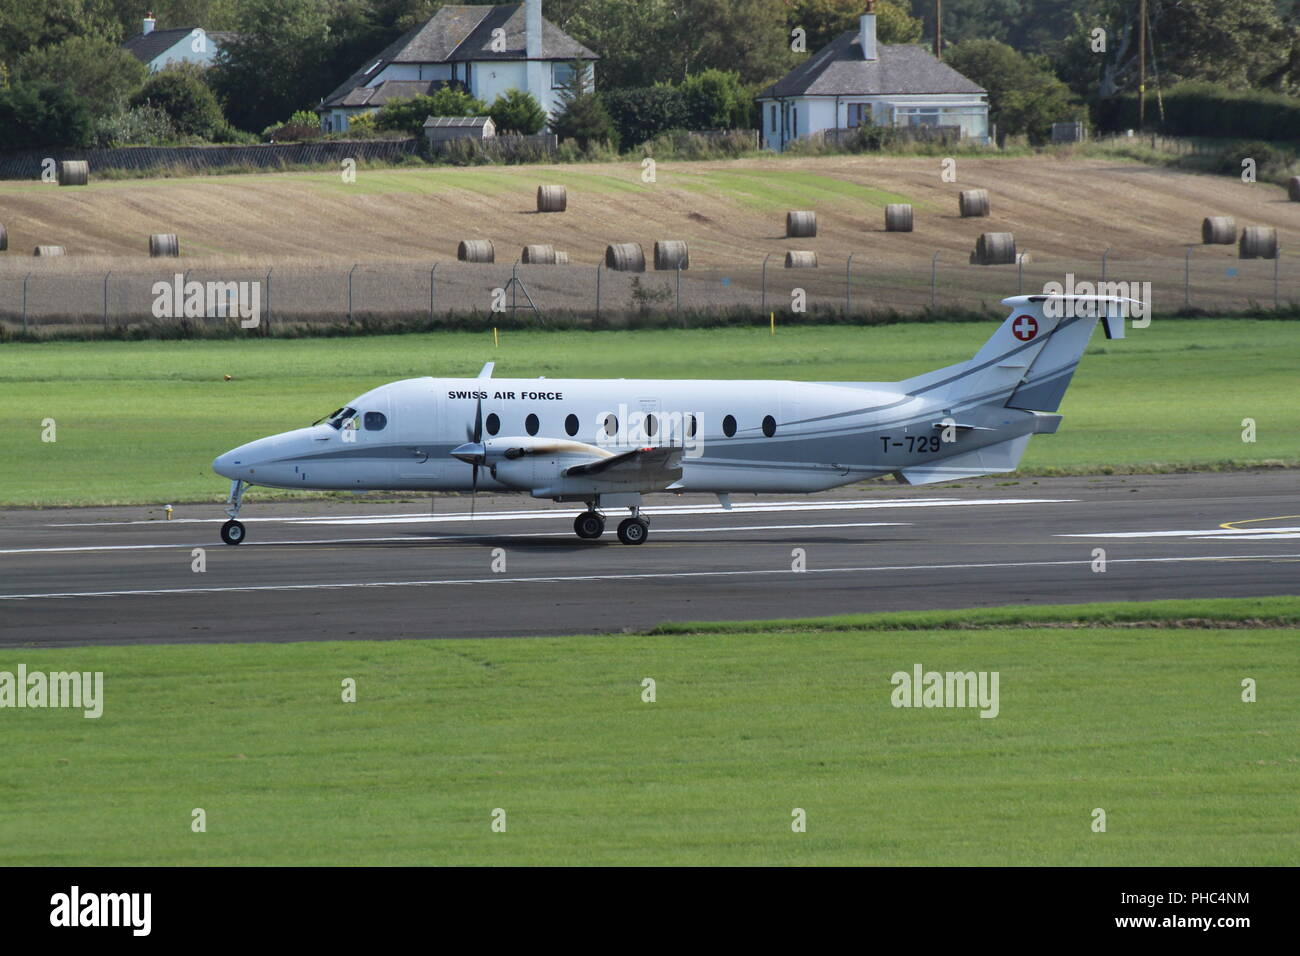 T-729, a Beechcraft 1900D operated by the Swiss Air Force, at Prestwick International Airport in Ayrshire. - Stock Image